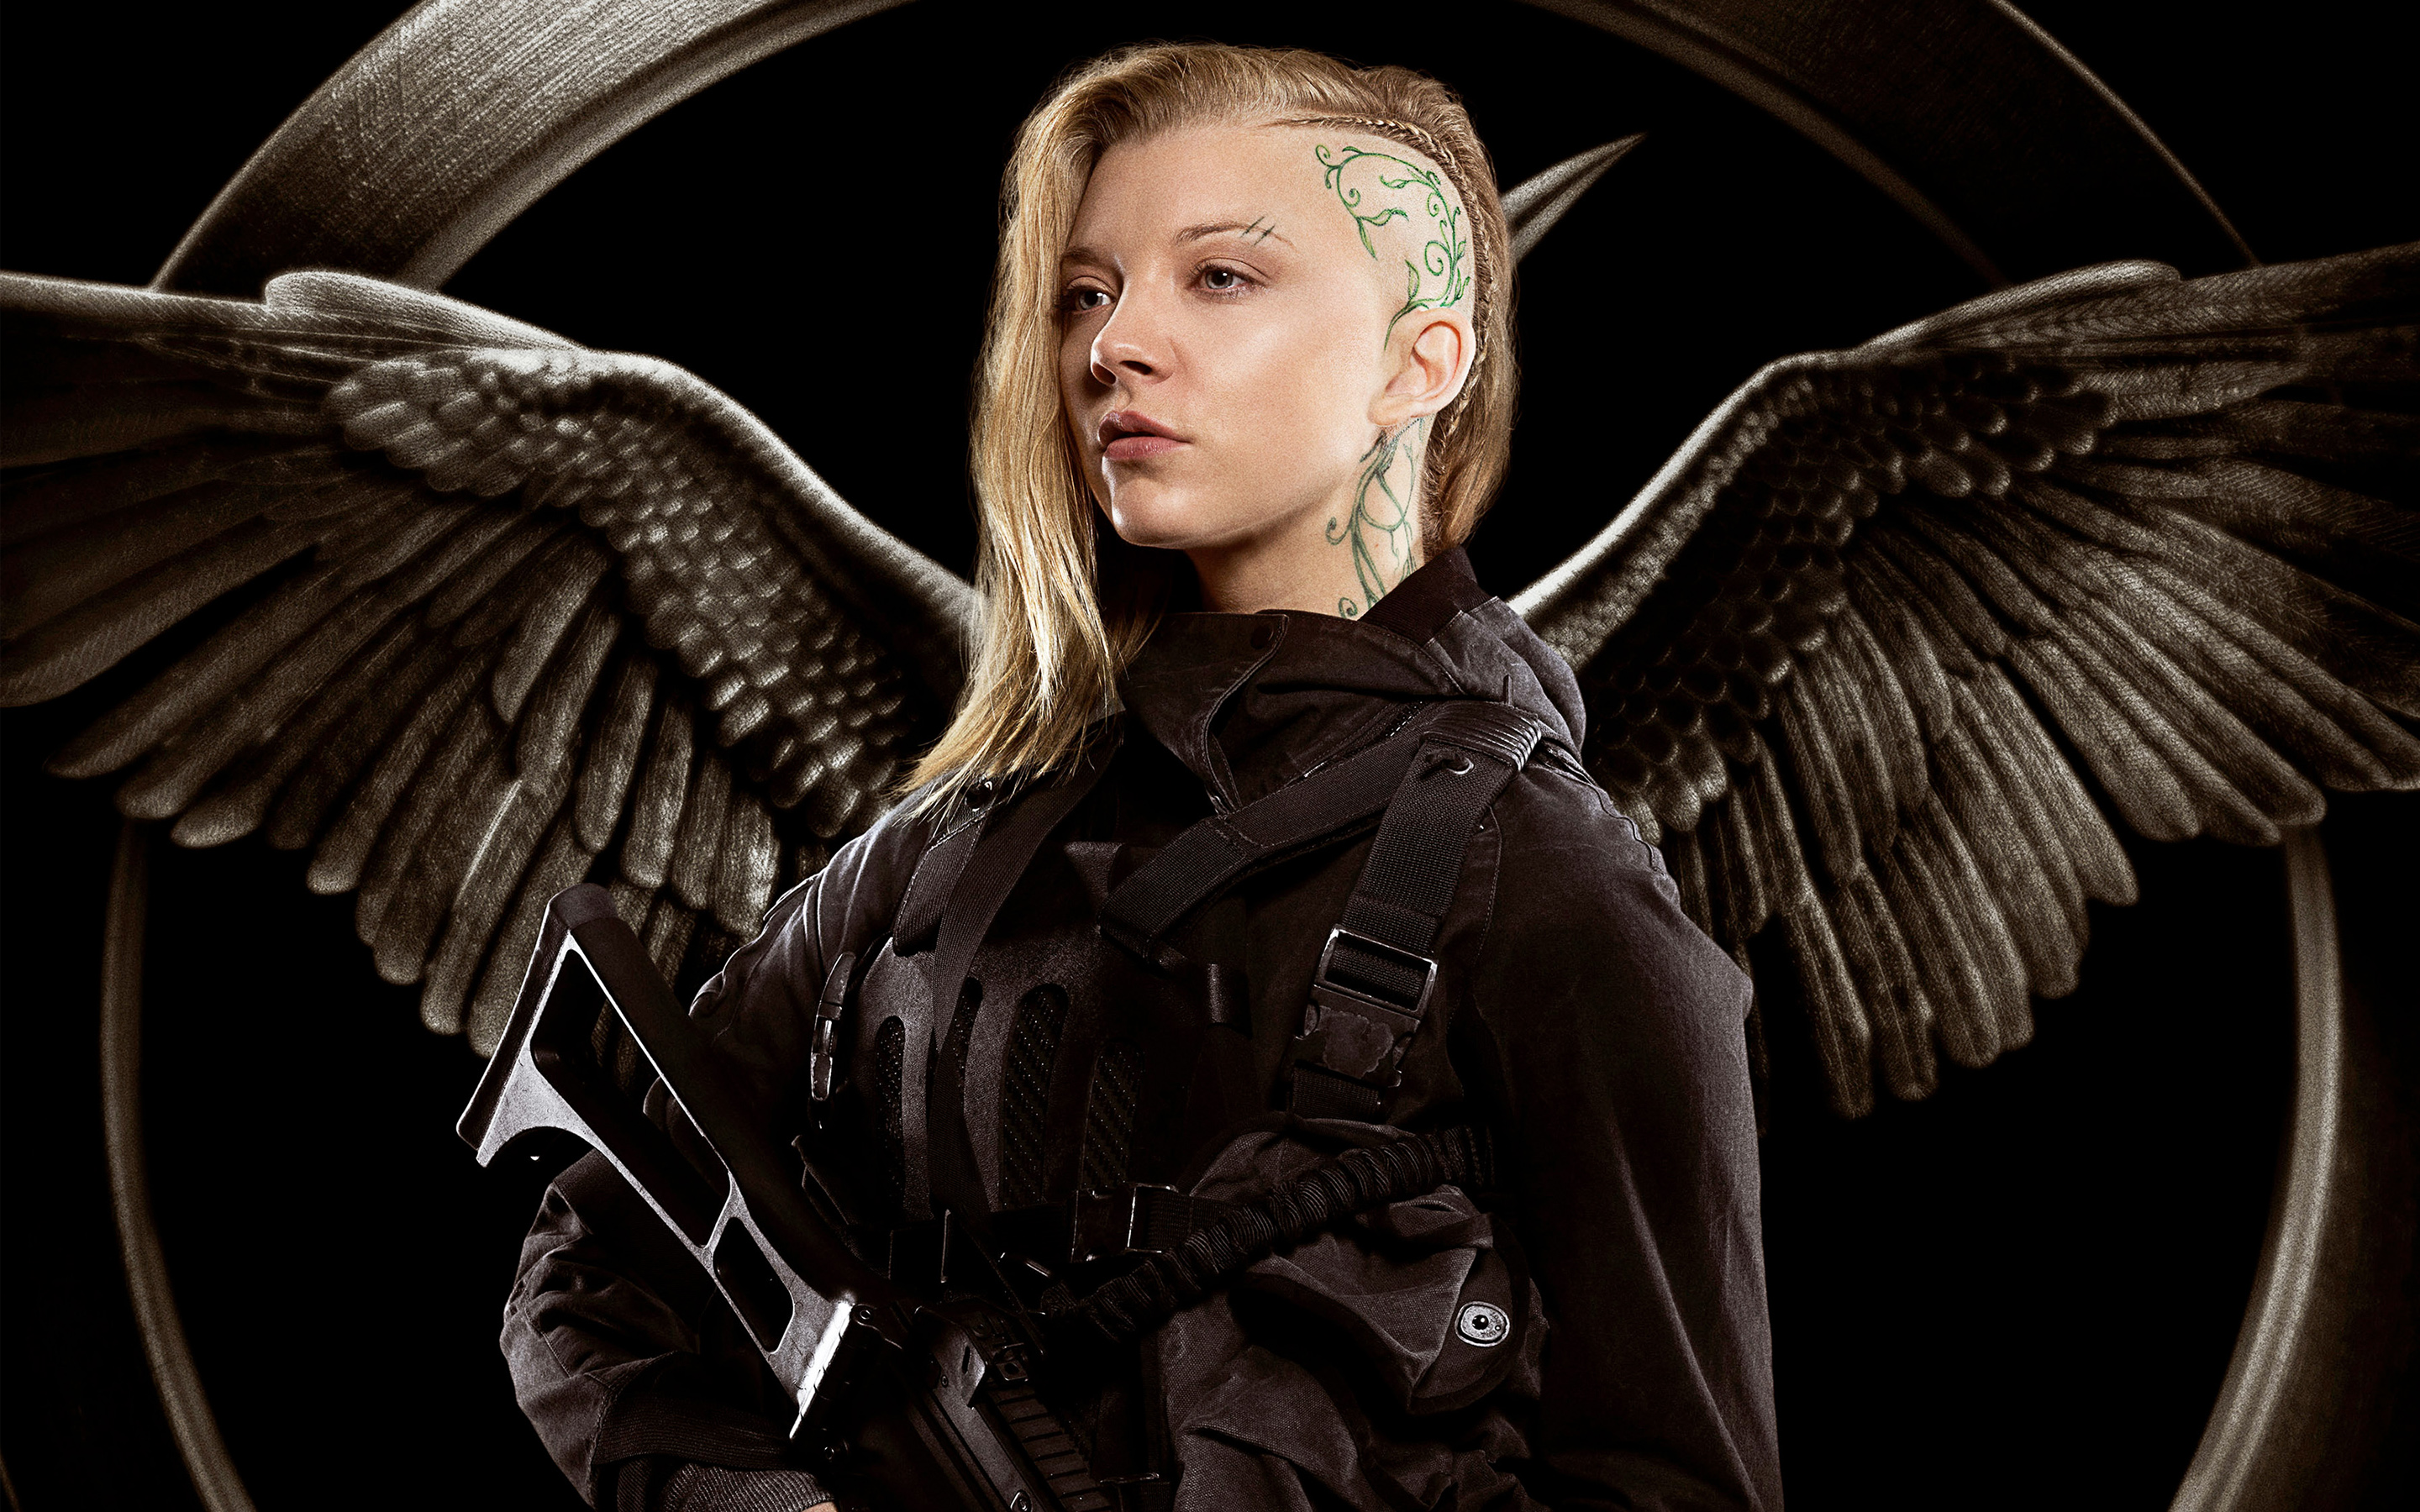 Natalie Dormer as Cressida 320.29 Kb